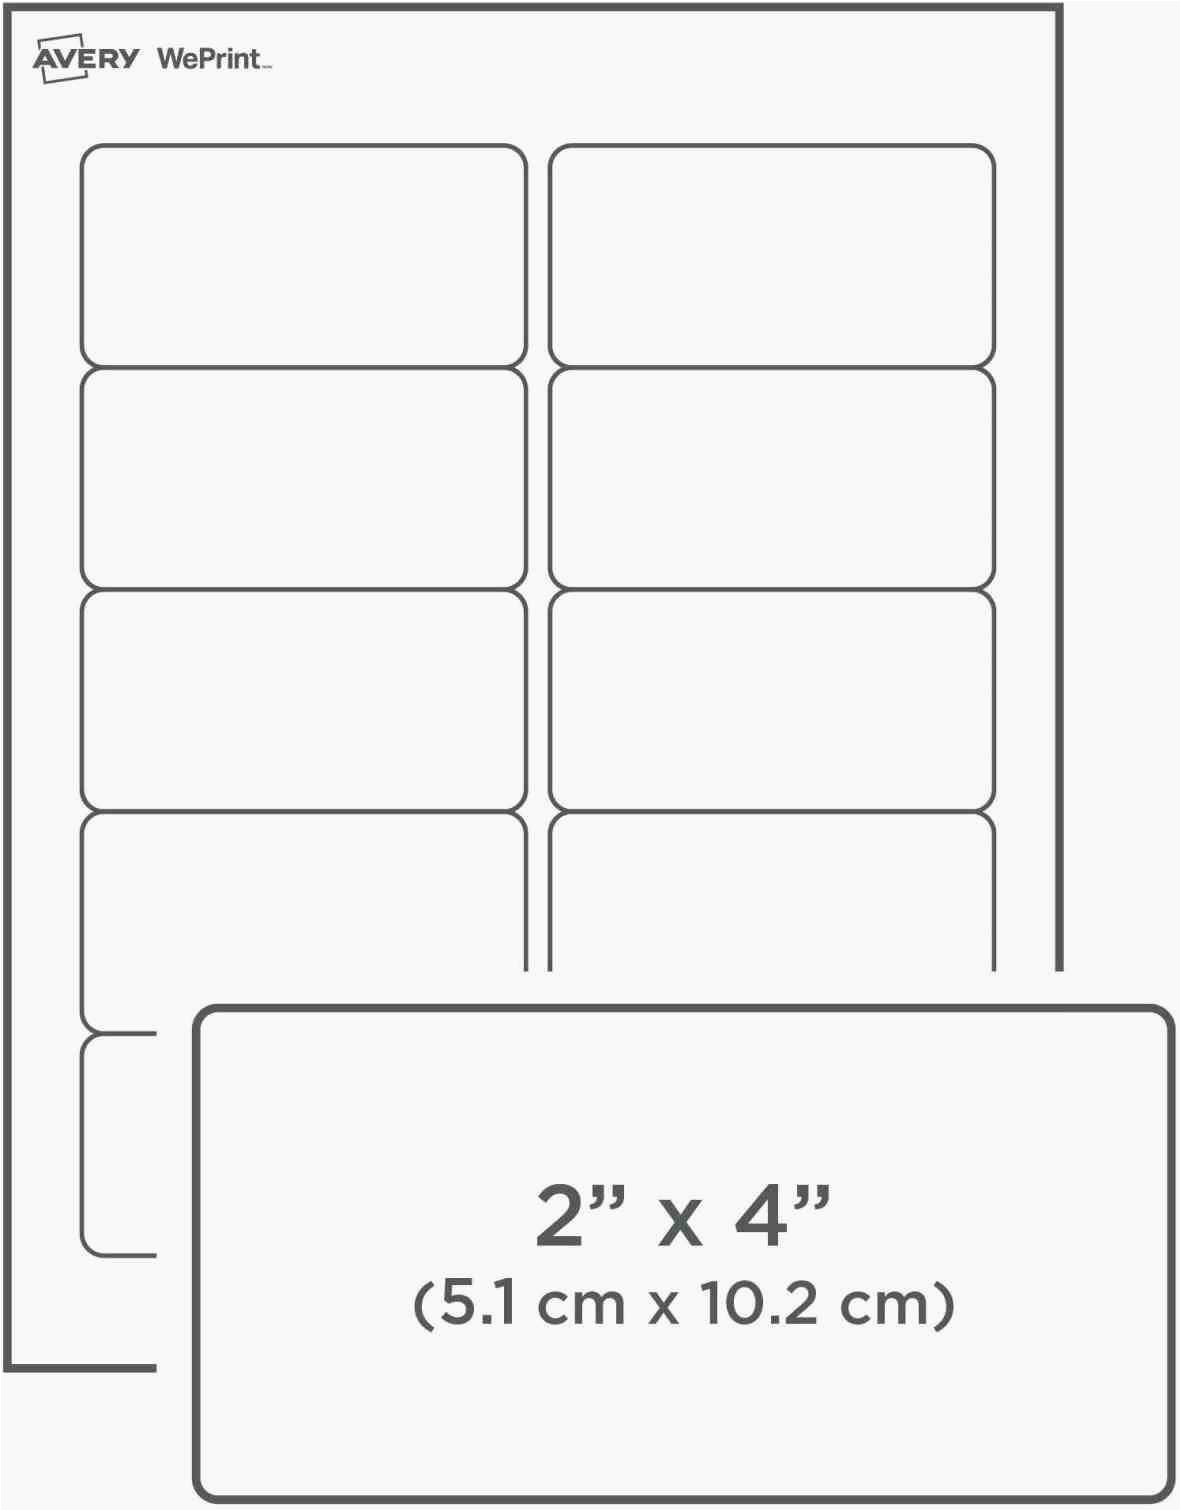 avery 2x4 label template indesign